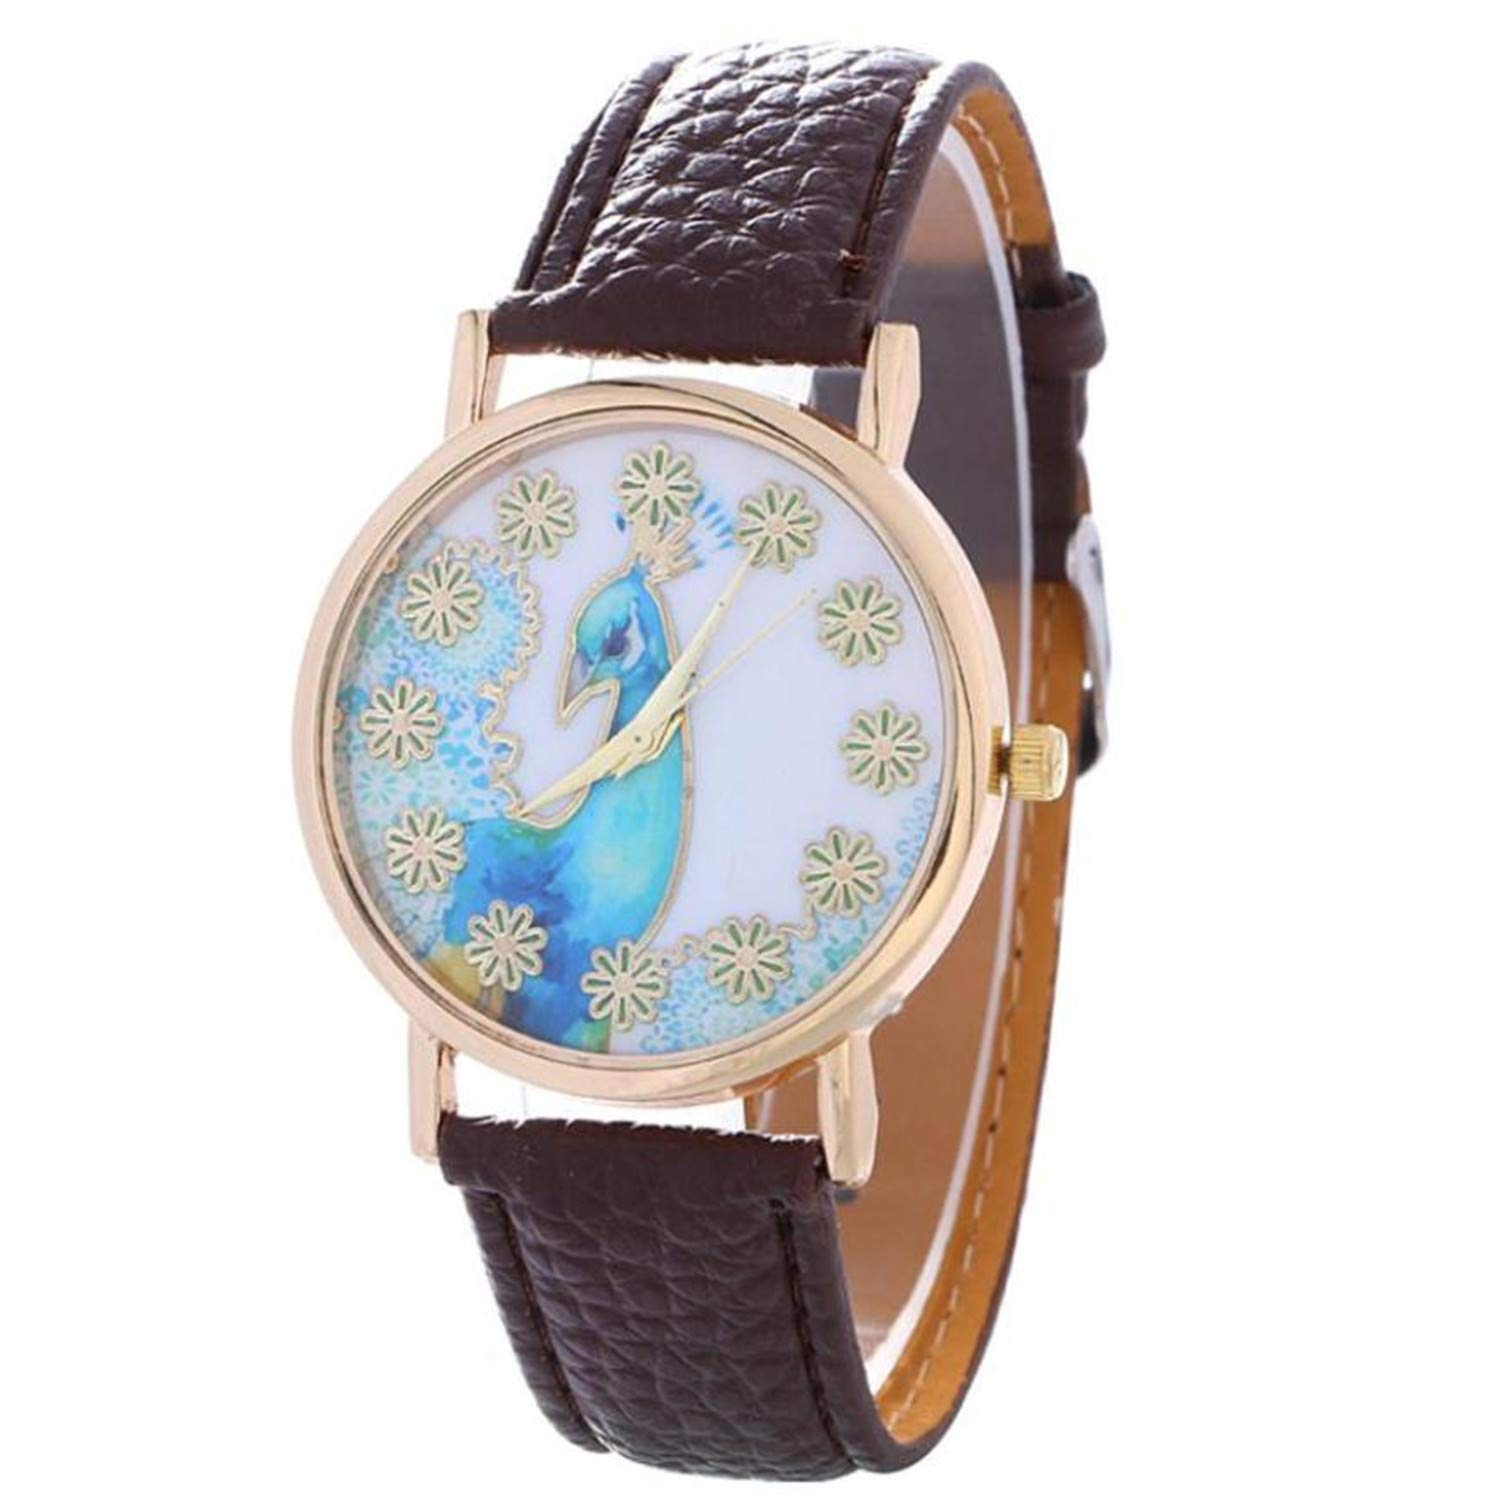 Amazon.com : sportsmanship Watch Women Peacock Pattern Fashion Clock Women Colored Leather Watch Ladies Gift Watch Vintage Relojes para Mujer(Black, ...